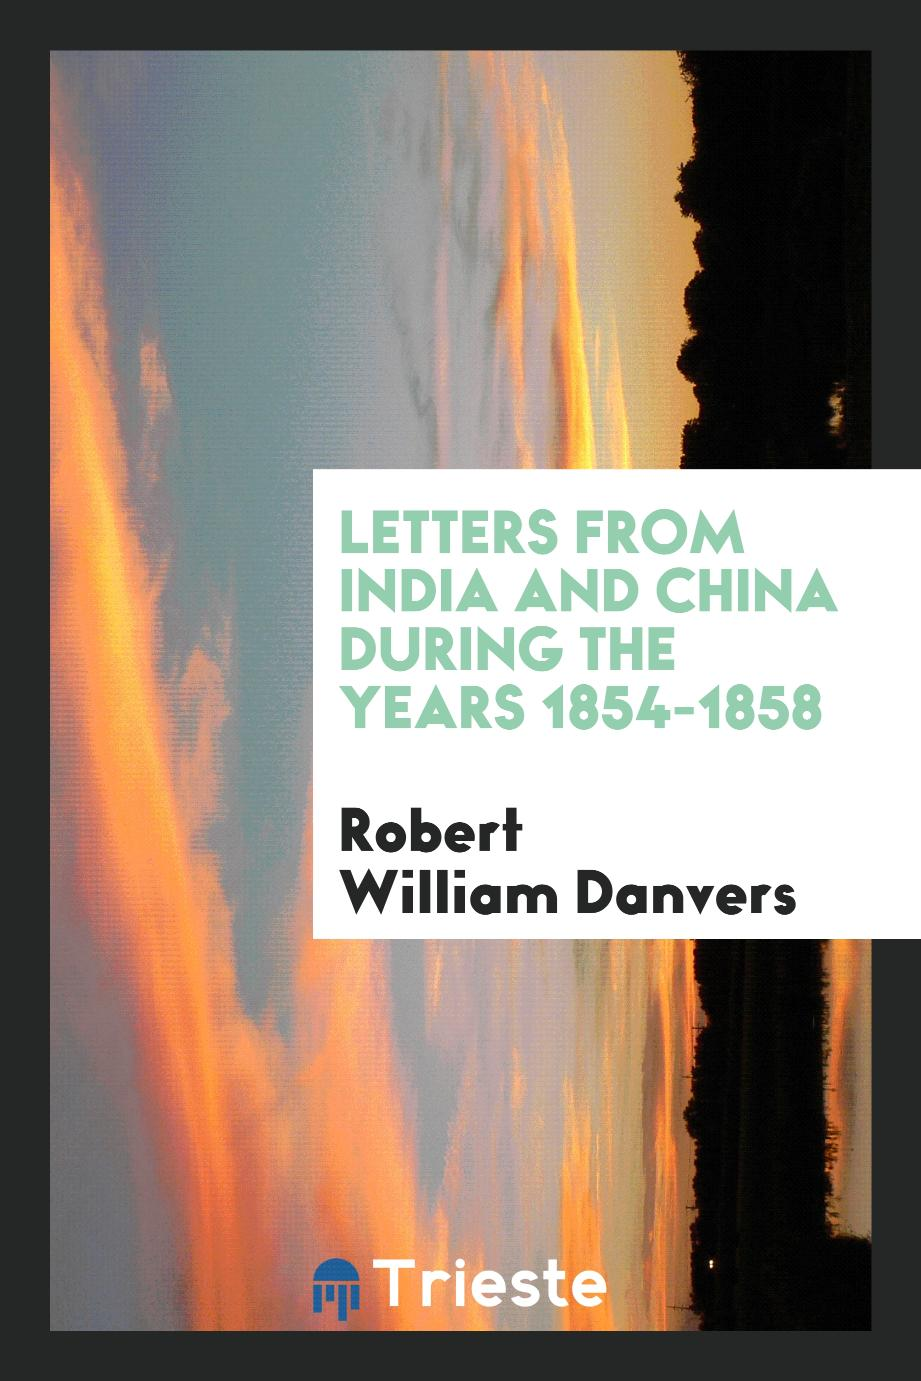 Letters from India and China during the years 1854-1858